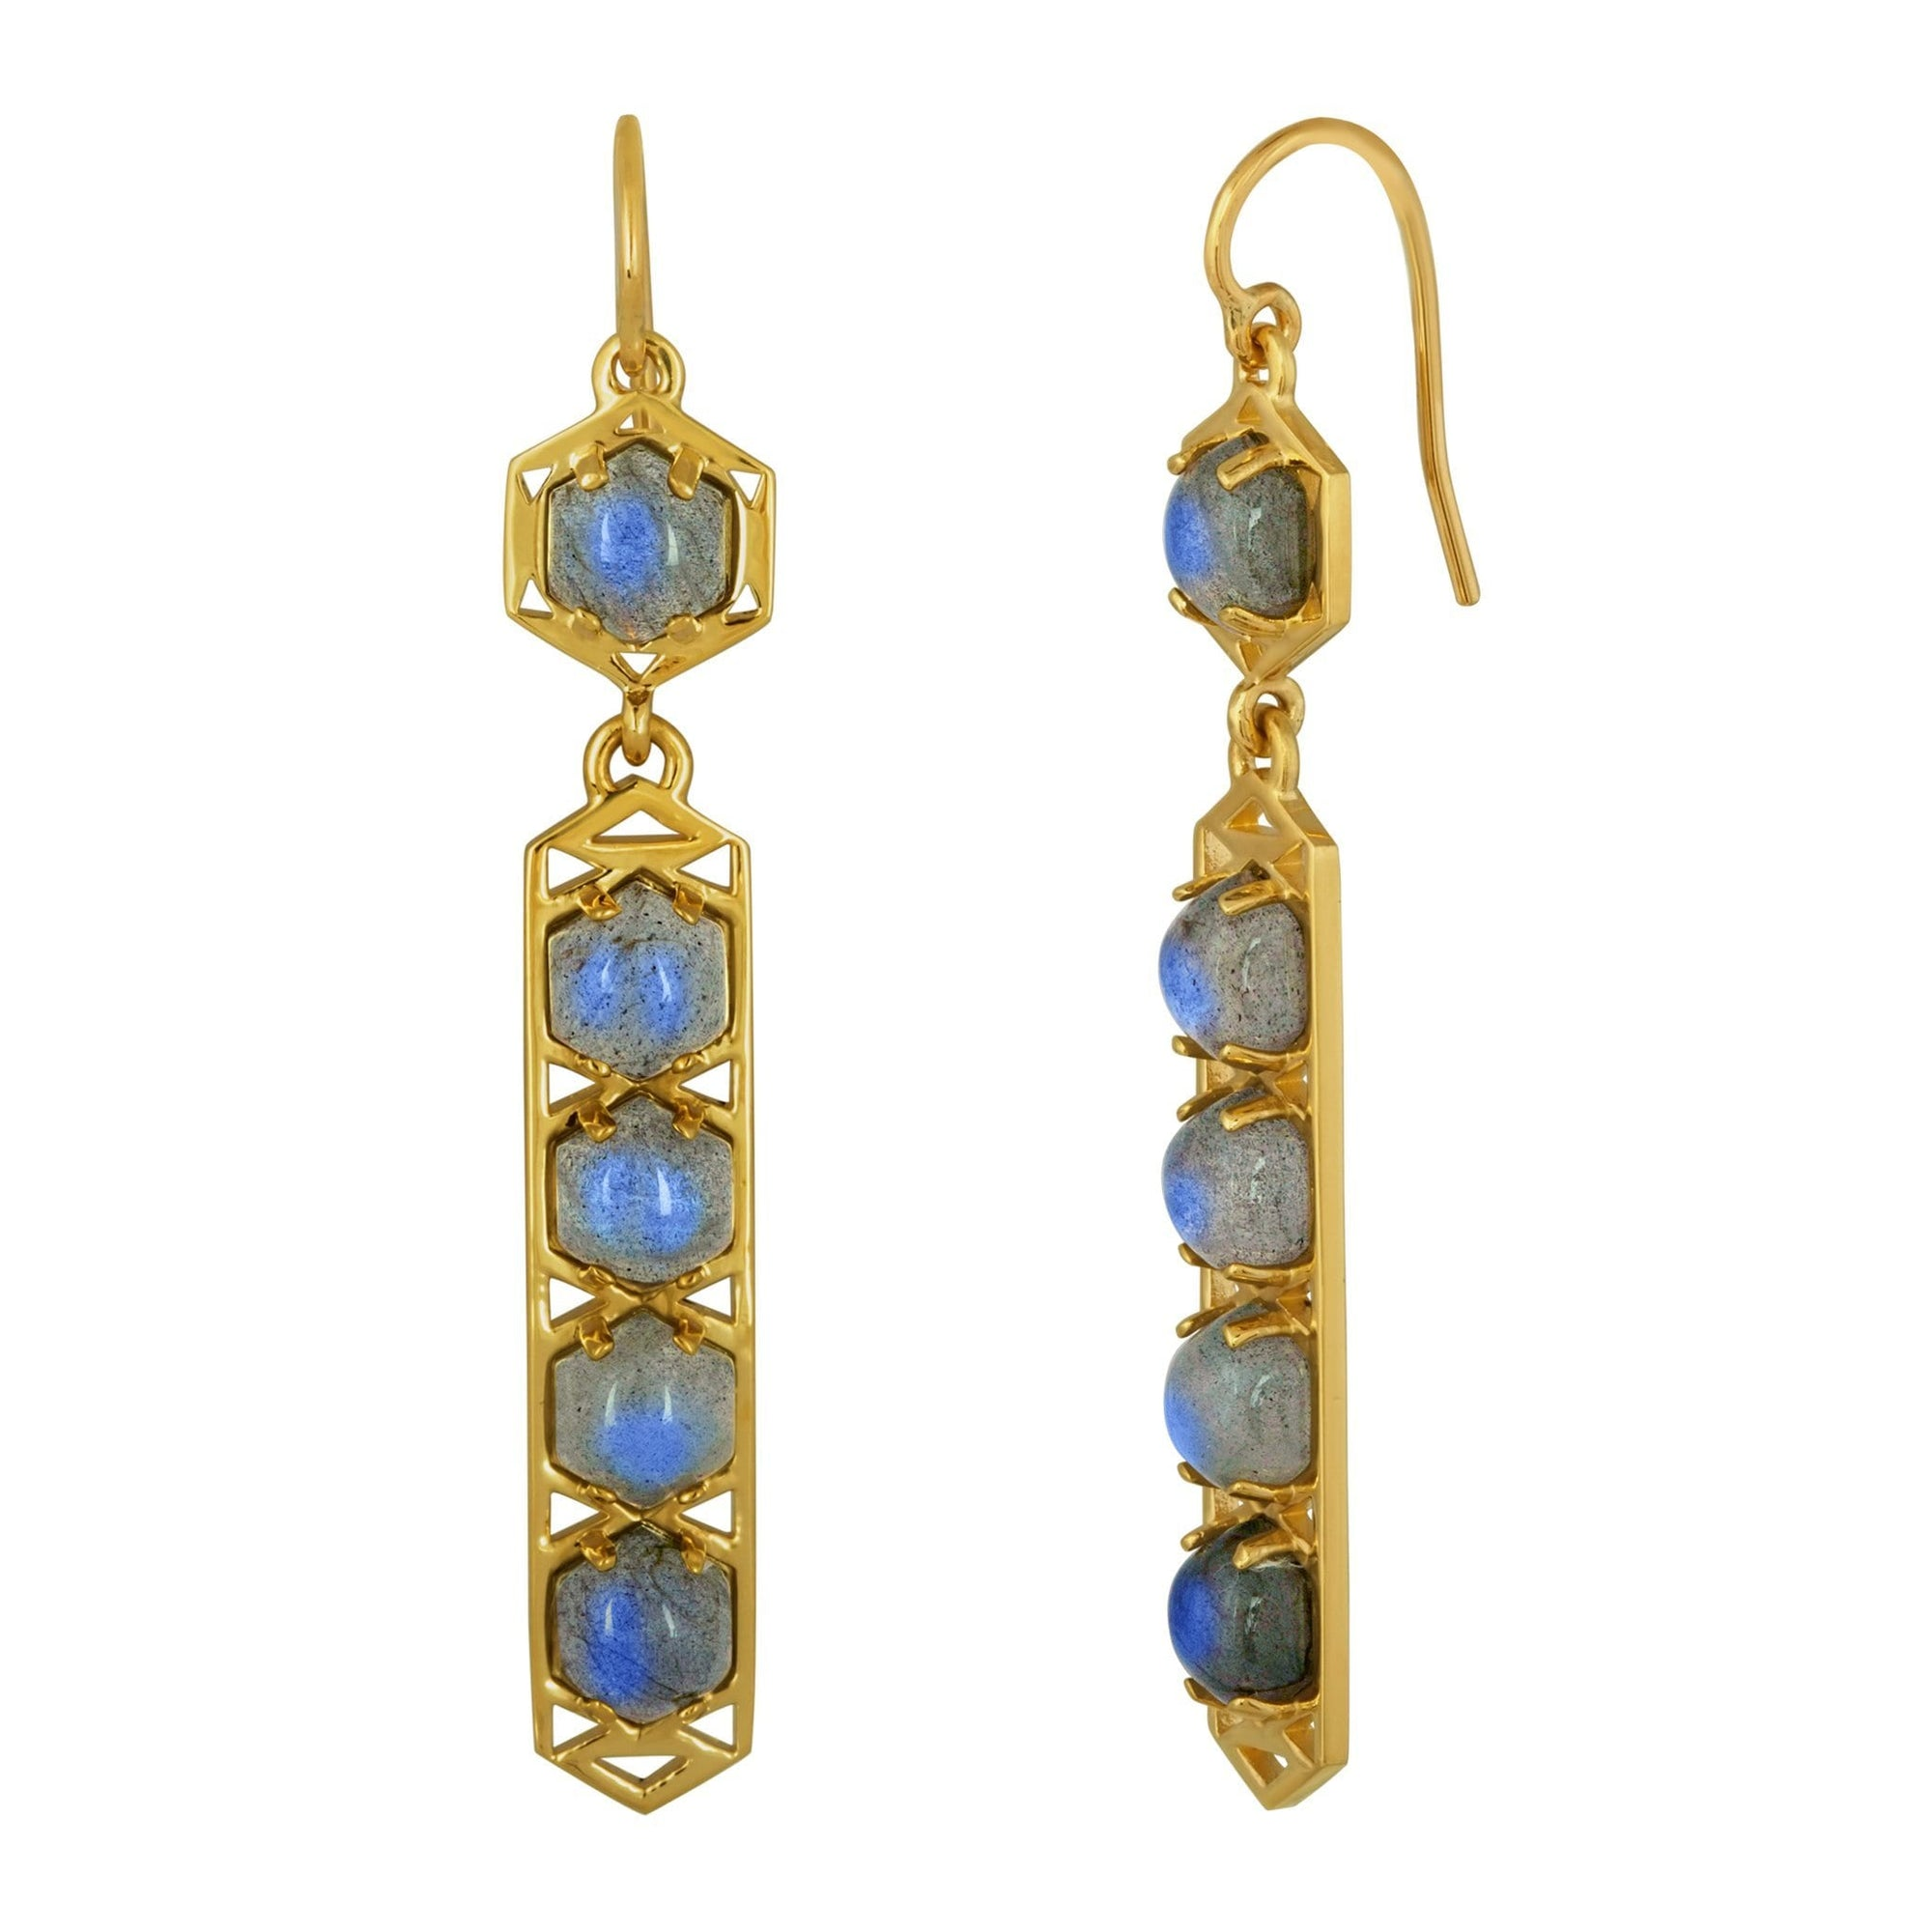 Stretto Earrings: 18k Gold, Hexagon Cabachon Labradorite